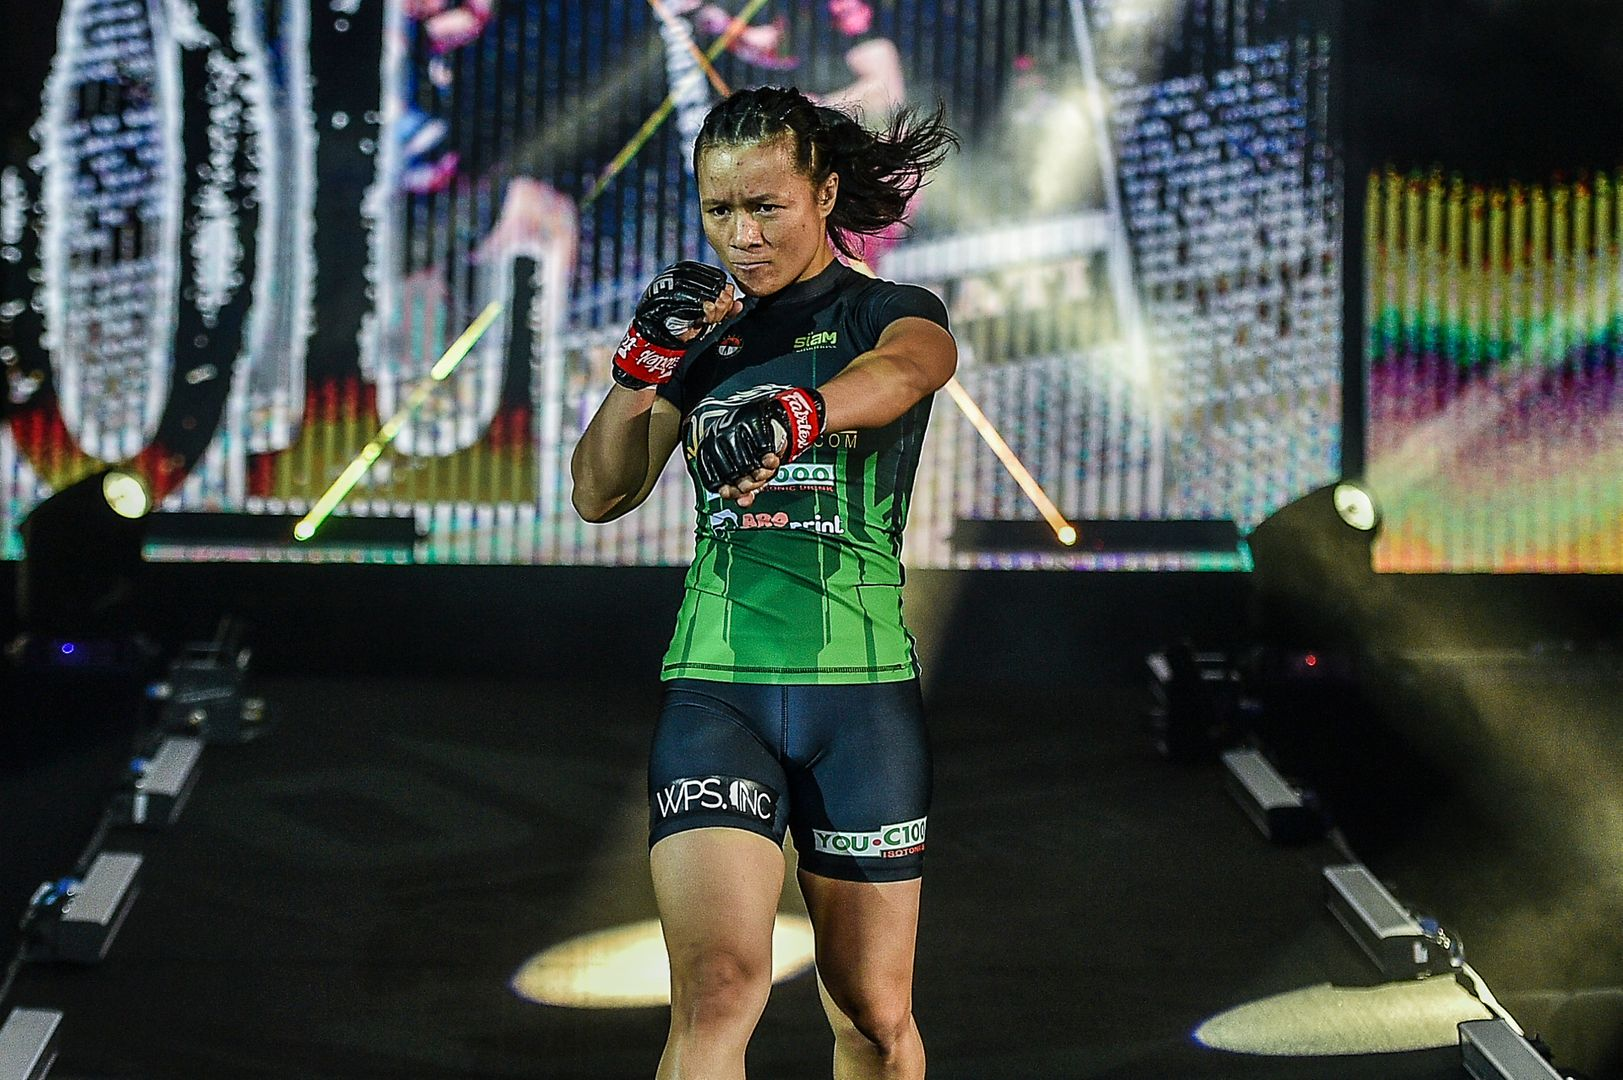 Chinese MMA star Meng Bo knocks out Indonesian MMA fighter Priscilla Hertati Lumban Gaol at ONE: INSIDE THE MATRIX II in Singapore